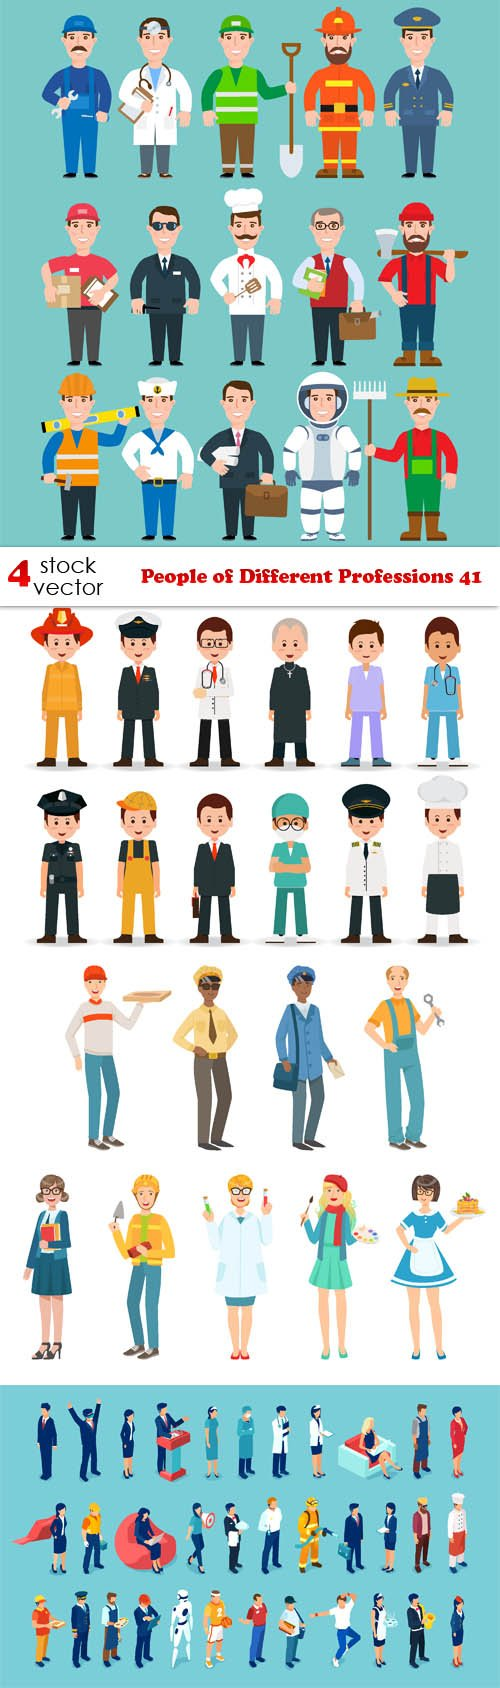 Vectors - People of Different Professions 41